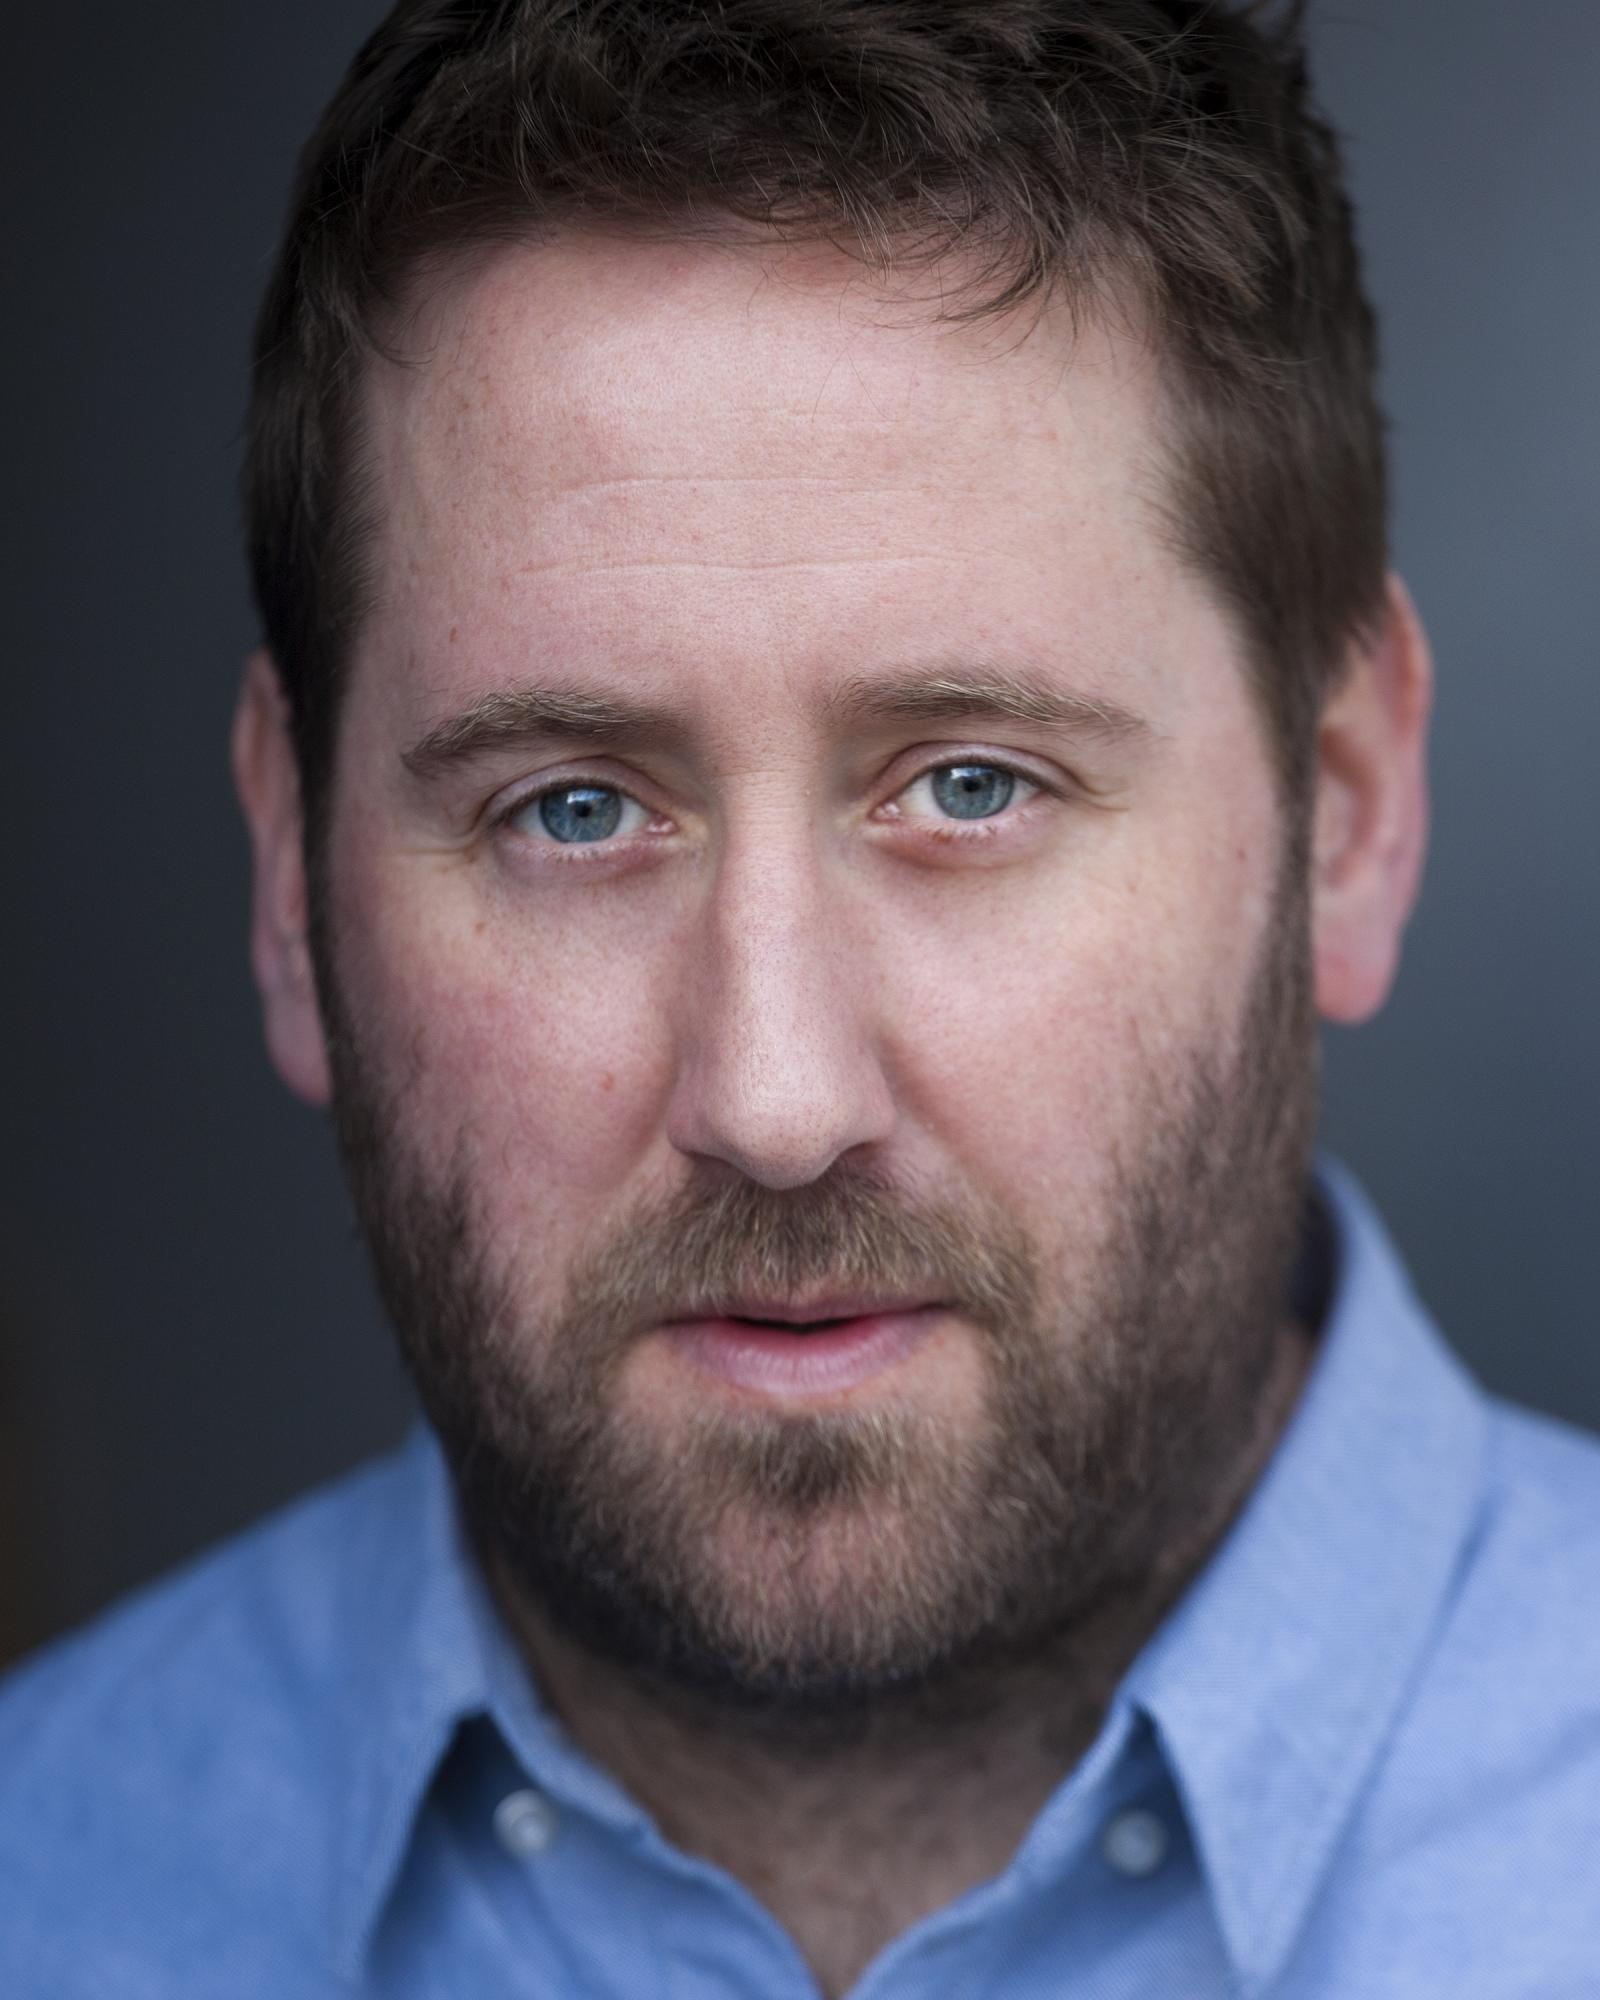 Jim Howick 2019: Wife, net worth, tattoos, smoking & body facts - Taddlr